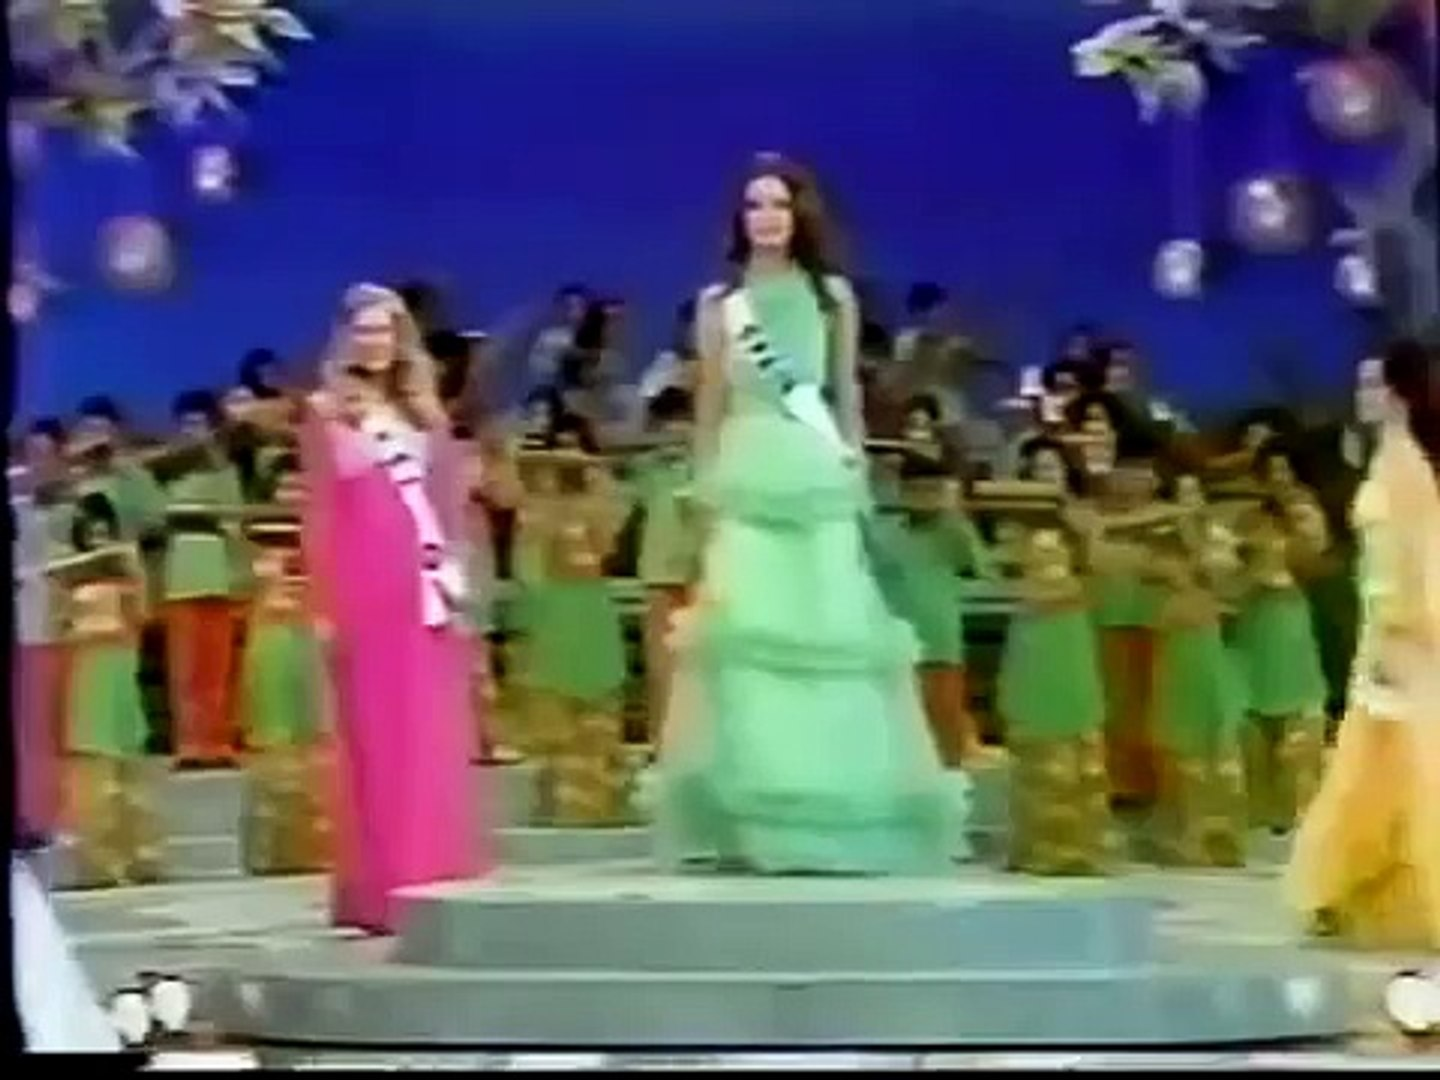 Amparo Muñoz Quesada miss universe in memory of amparo muñoz 1954-2011 (part 3)